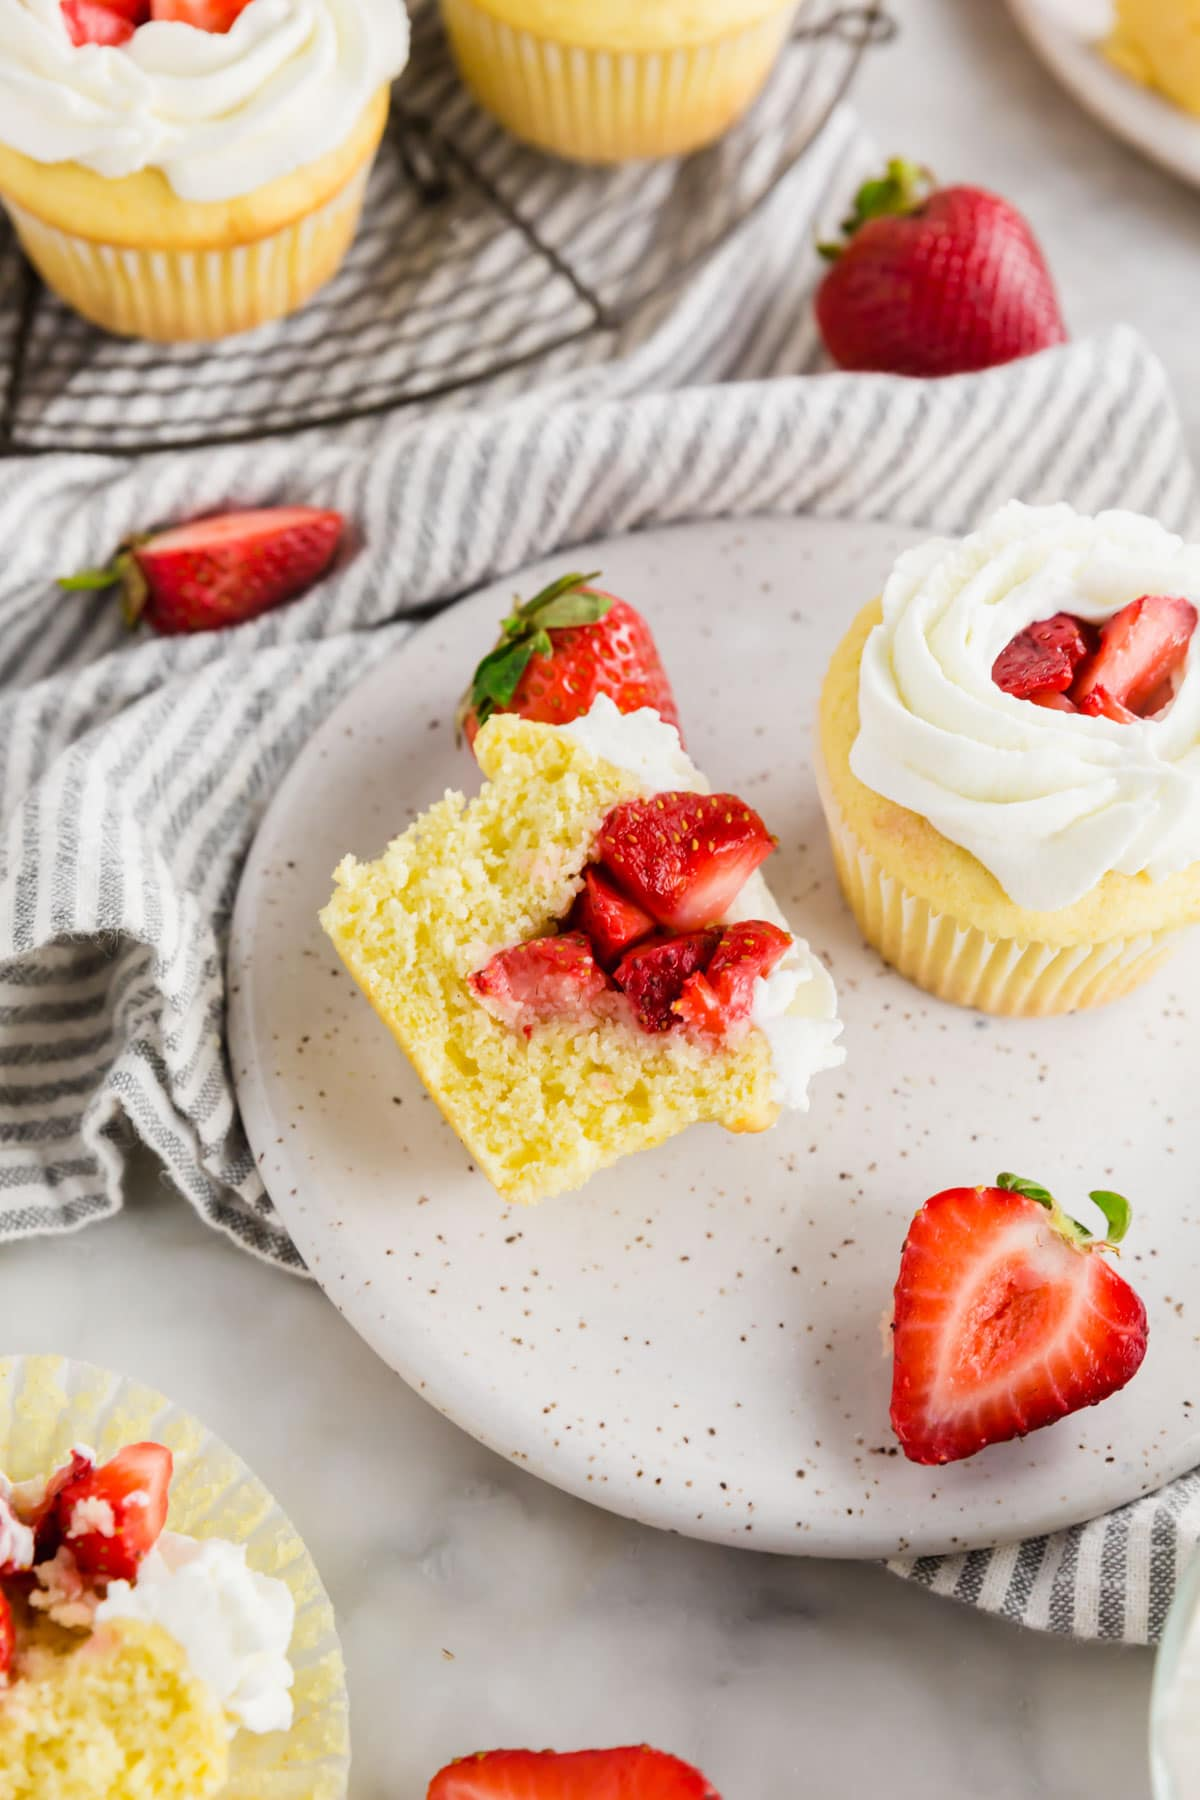 Strawberry shortcake cupcakes on a plate with one sliced in half and fresh strawberries surrounding the plate.